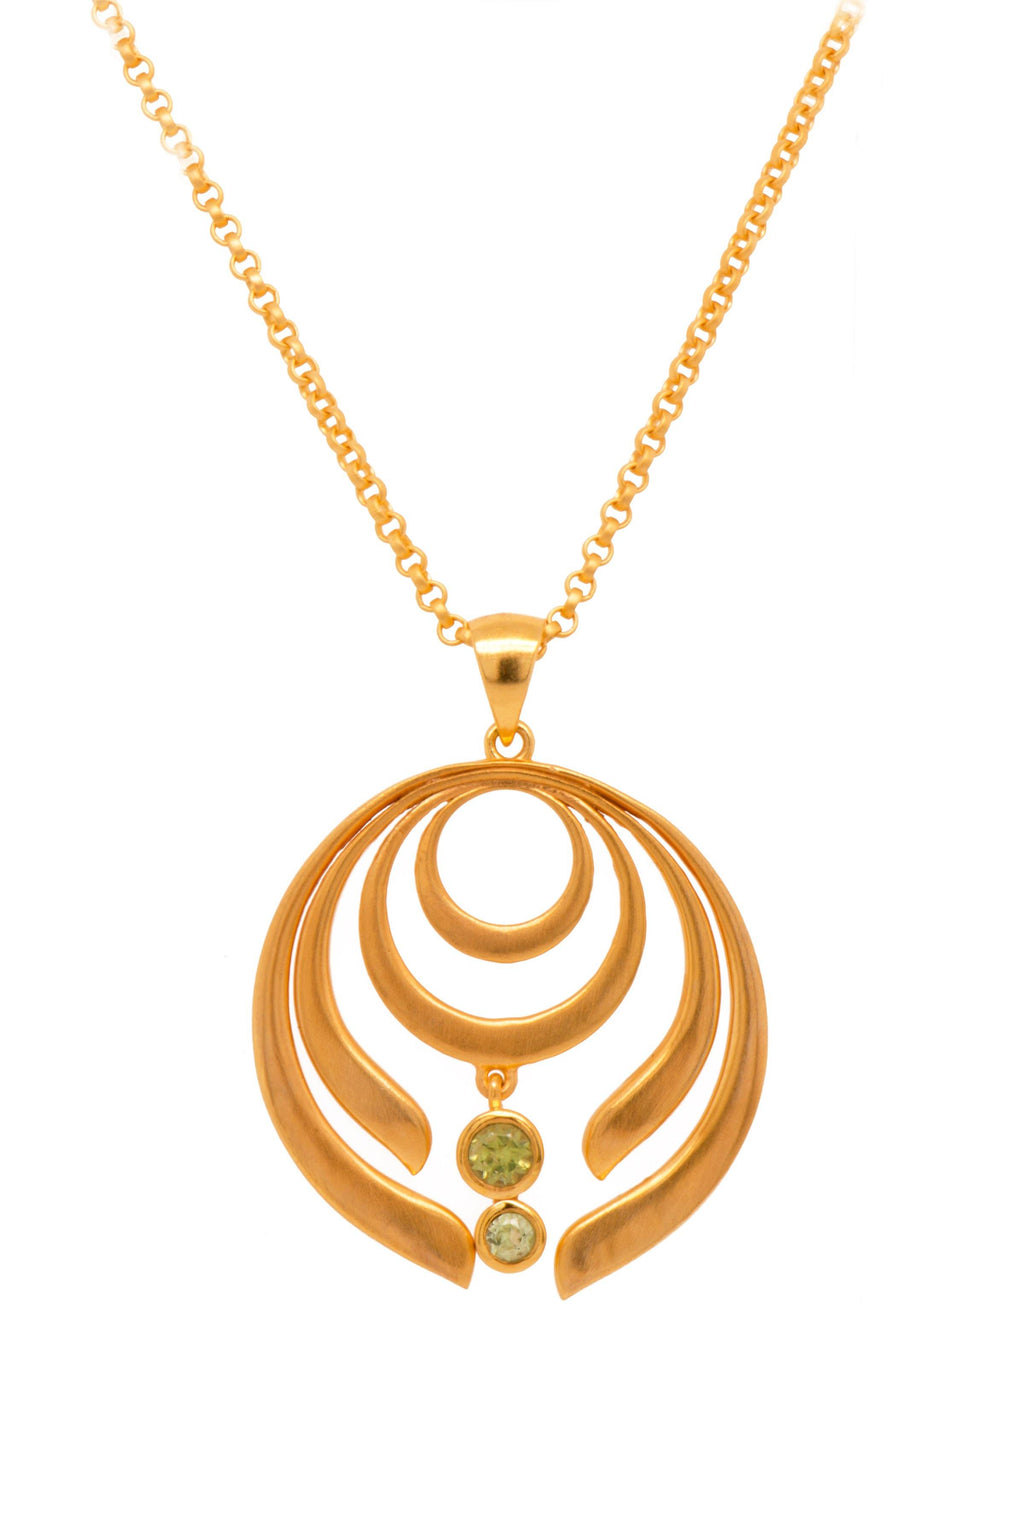 STRENGTH LARGE PERIDOT PENDANT 24K GOLD VERMEIL - Joyla Jewelry